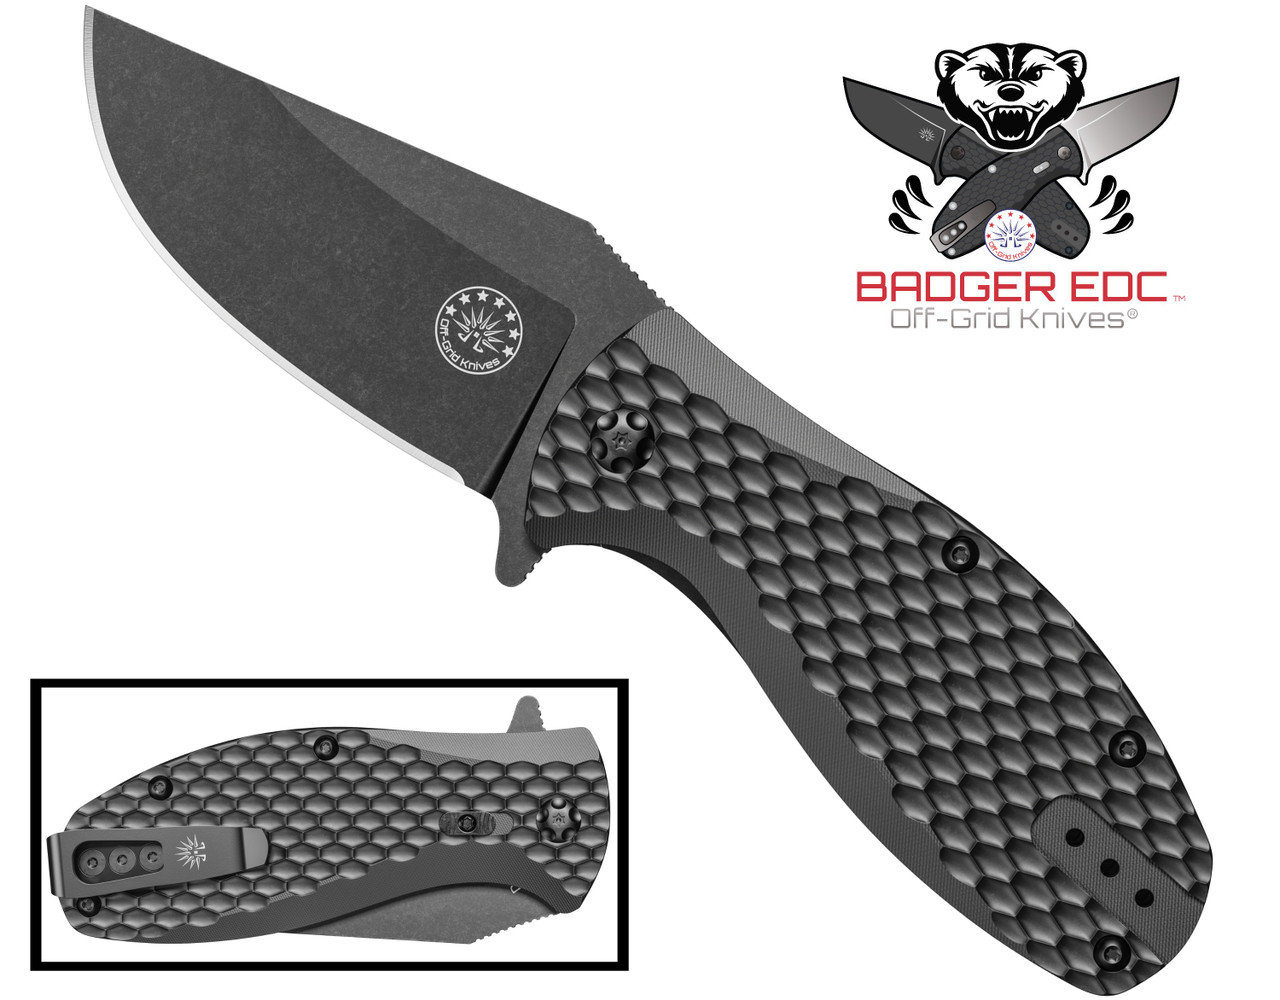 Badger Blackout EDC Knife